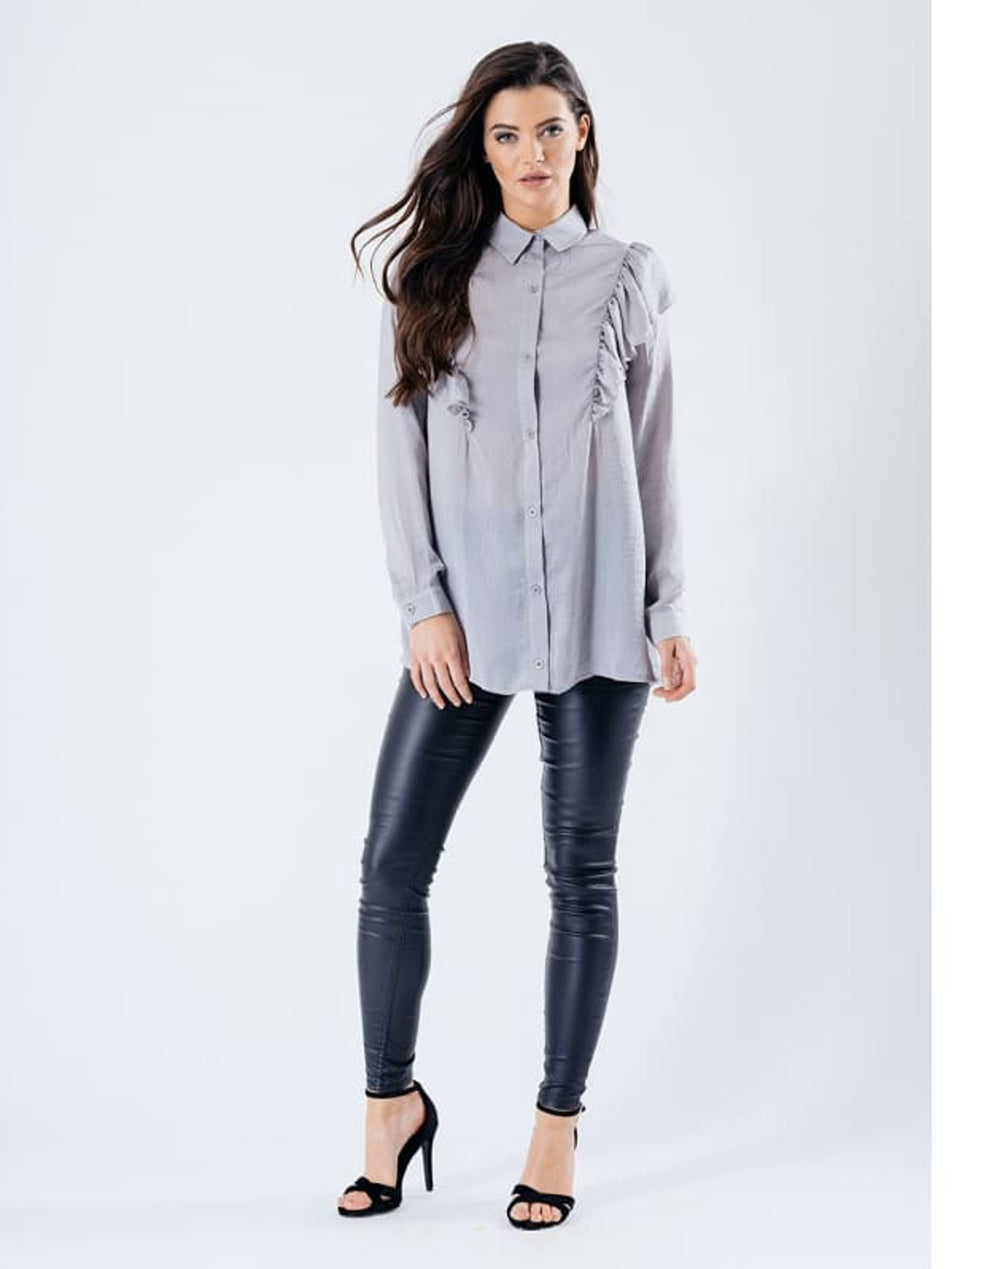 Front Frill Blouse - Tops & Shirts blouses frill blouse frill bouses GREY grey shirts